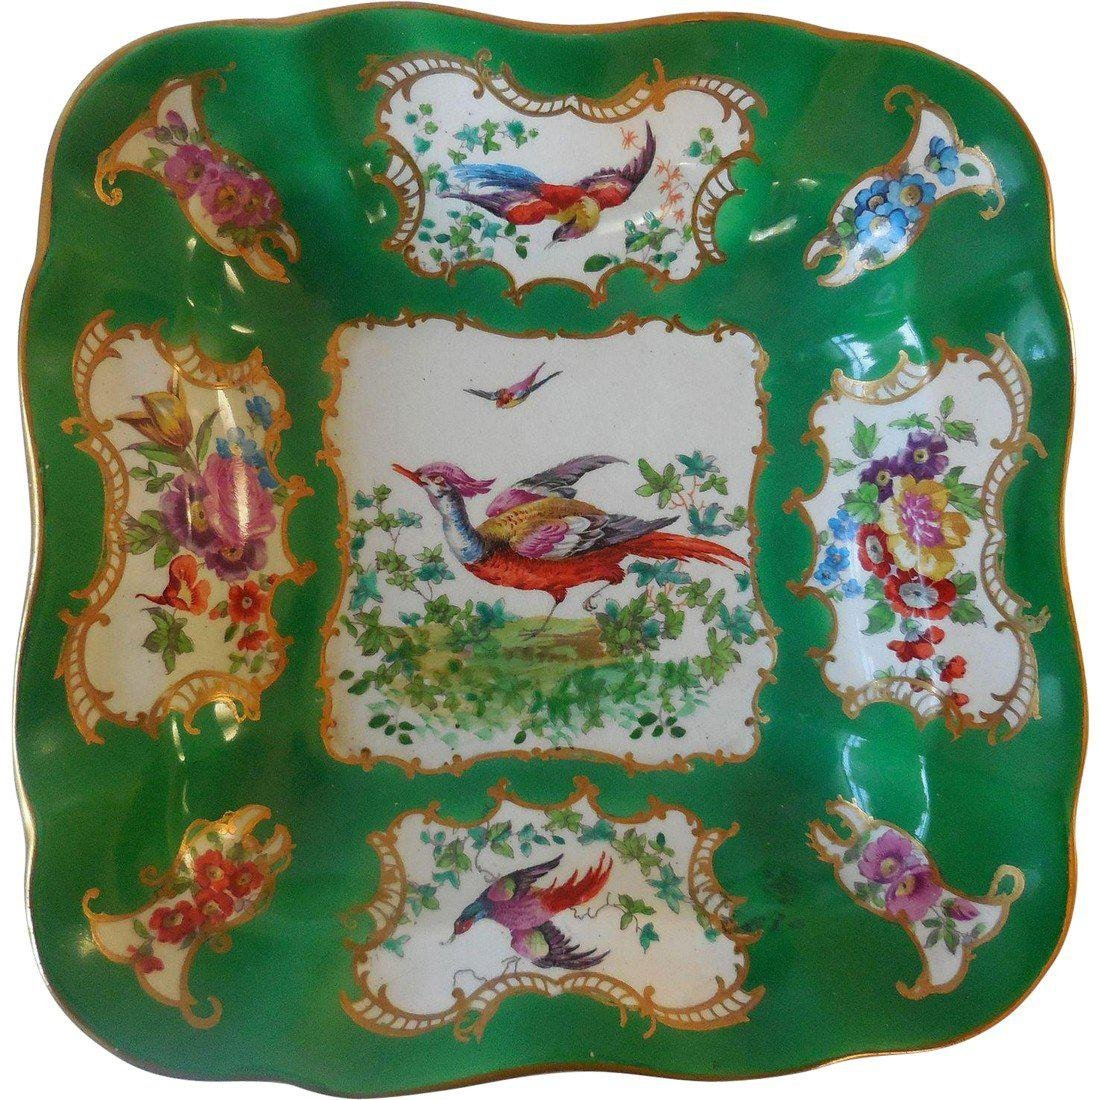 19th Century Chelsea Bird Vegetable Bowl